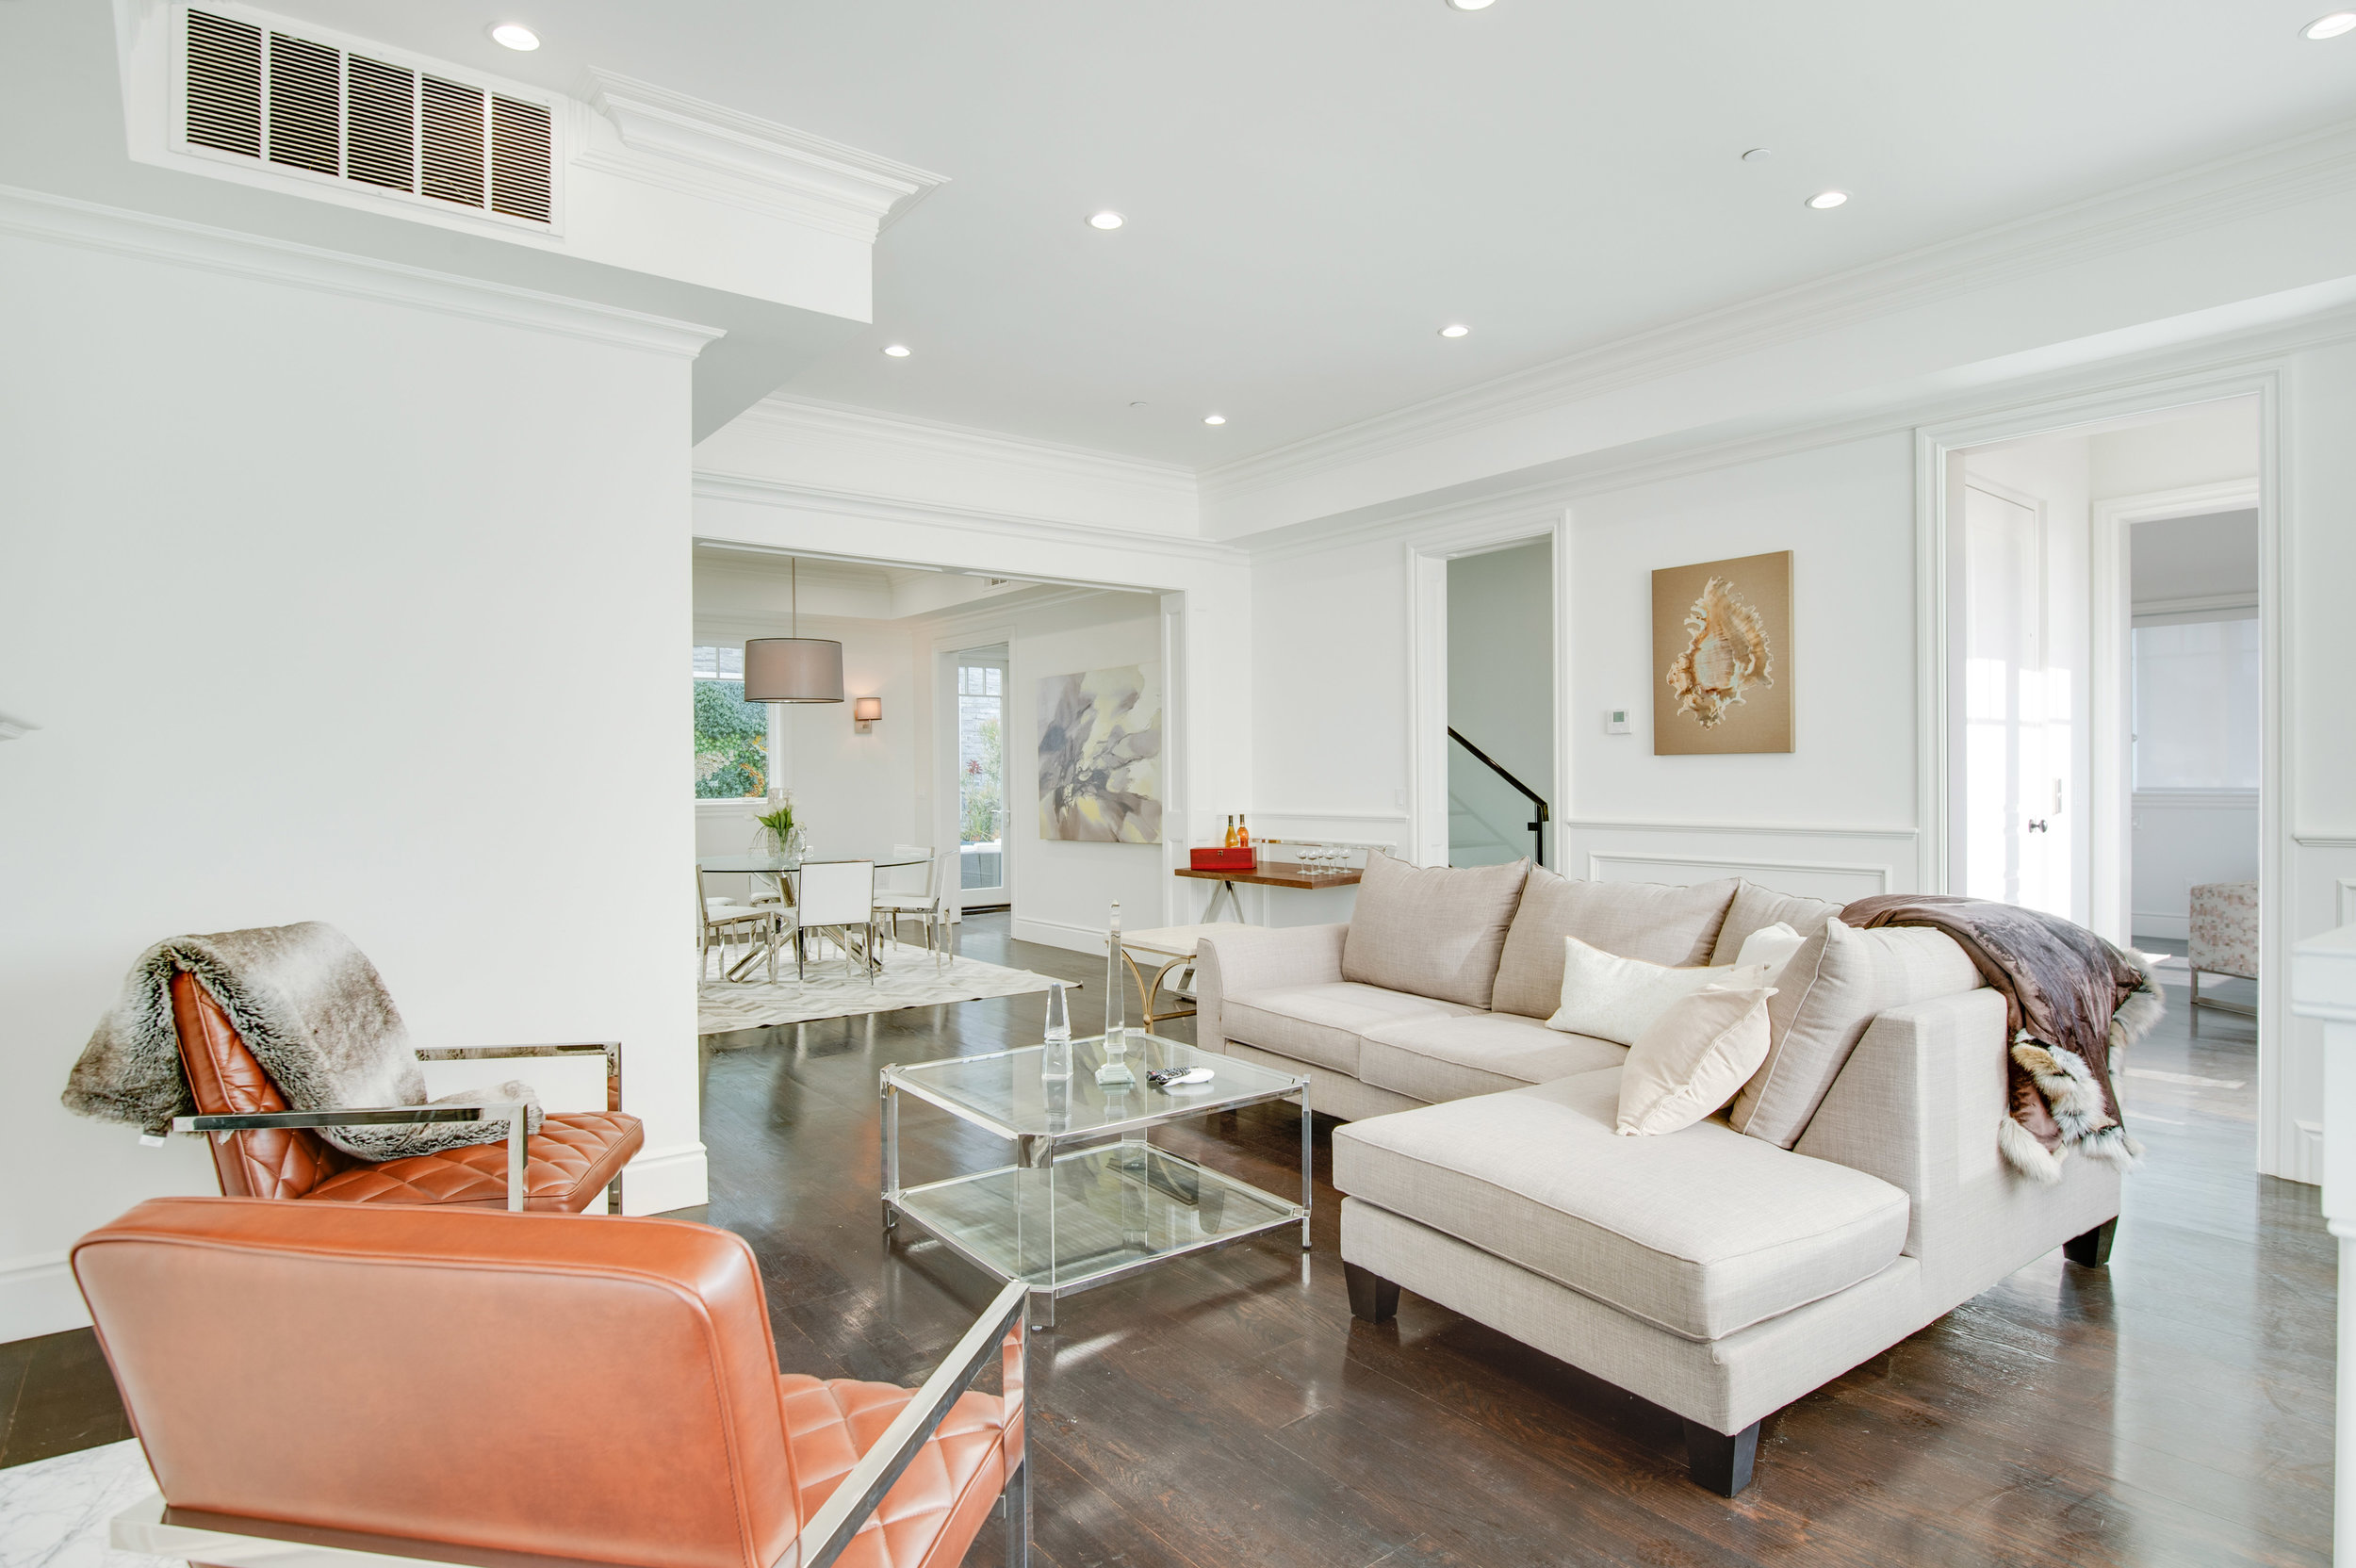 006 Living Room 17819 Castellammare Drive Pacific Palisades For Sale Lease The Malibu Life Team Compass Luxury Real Estate.jpg